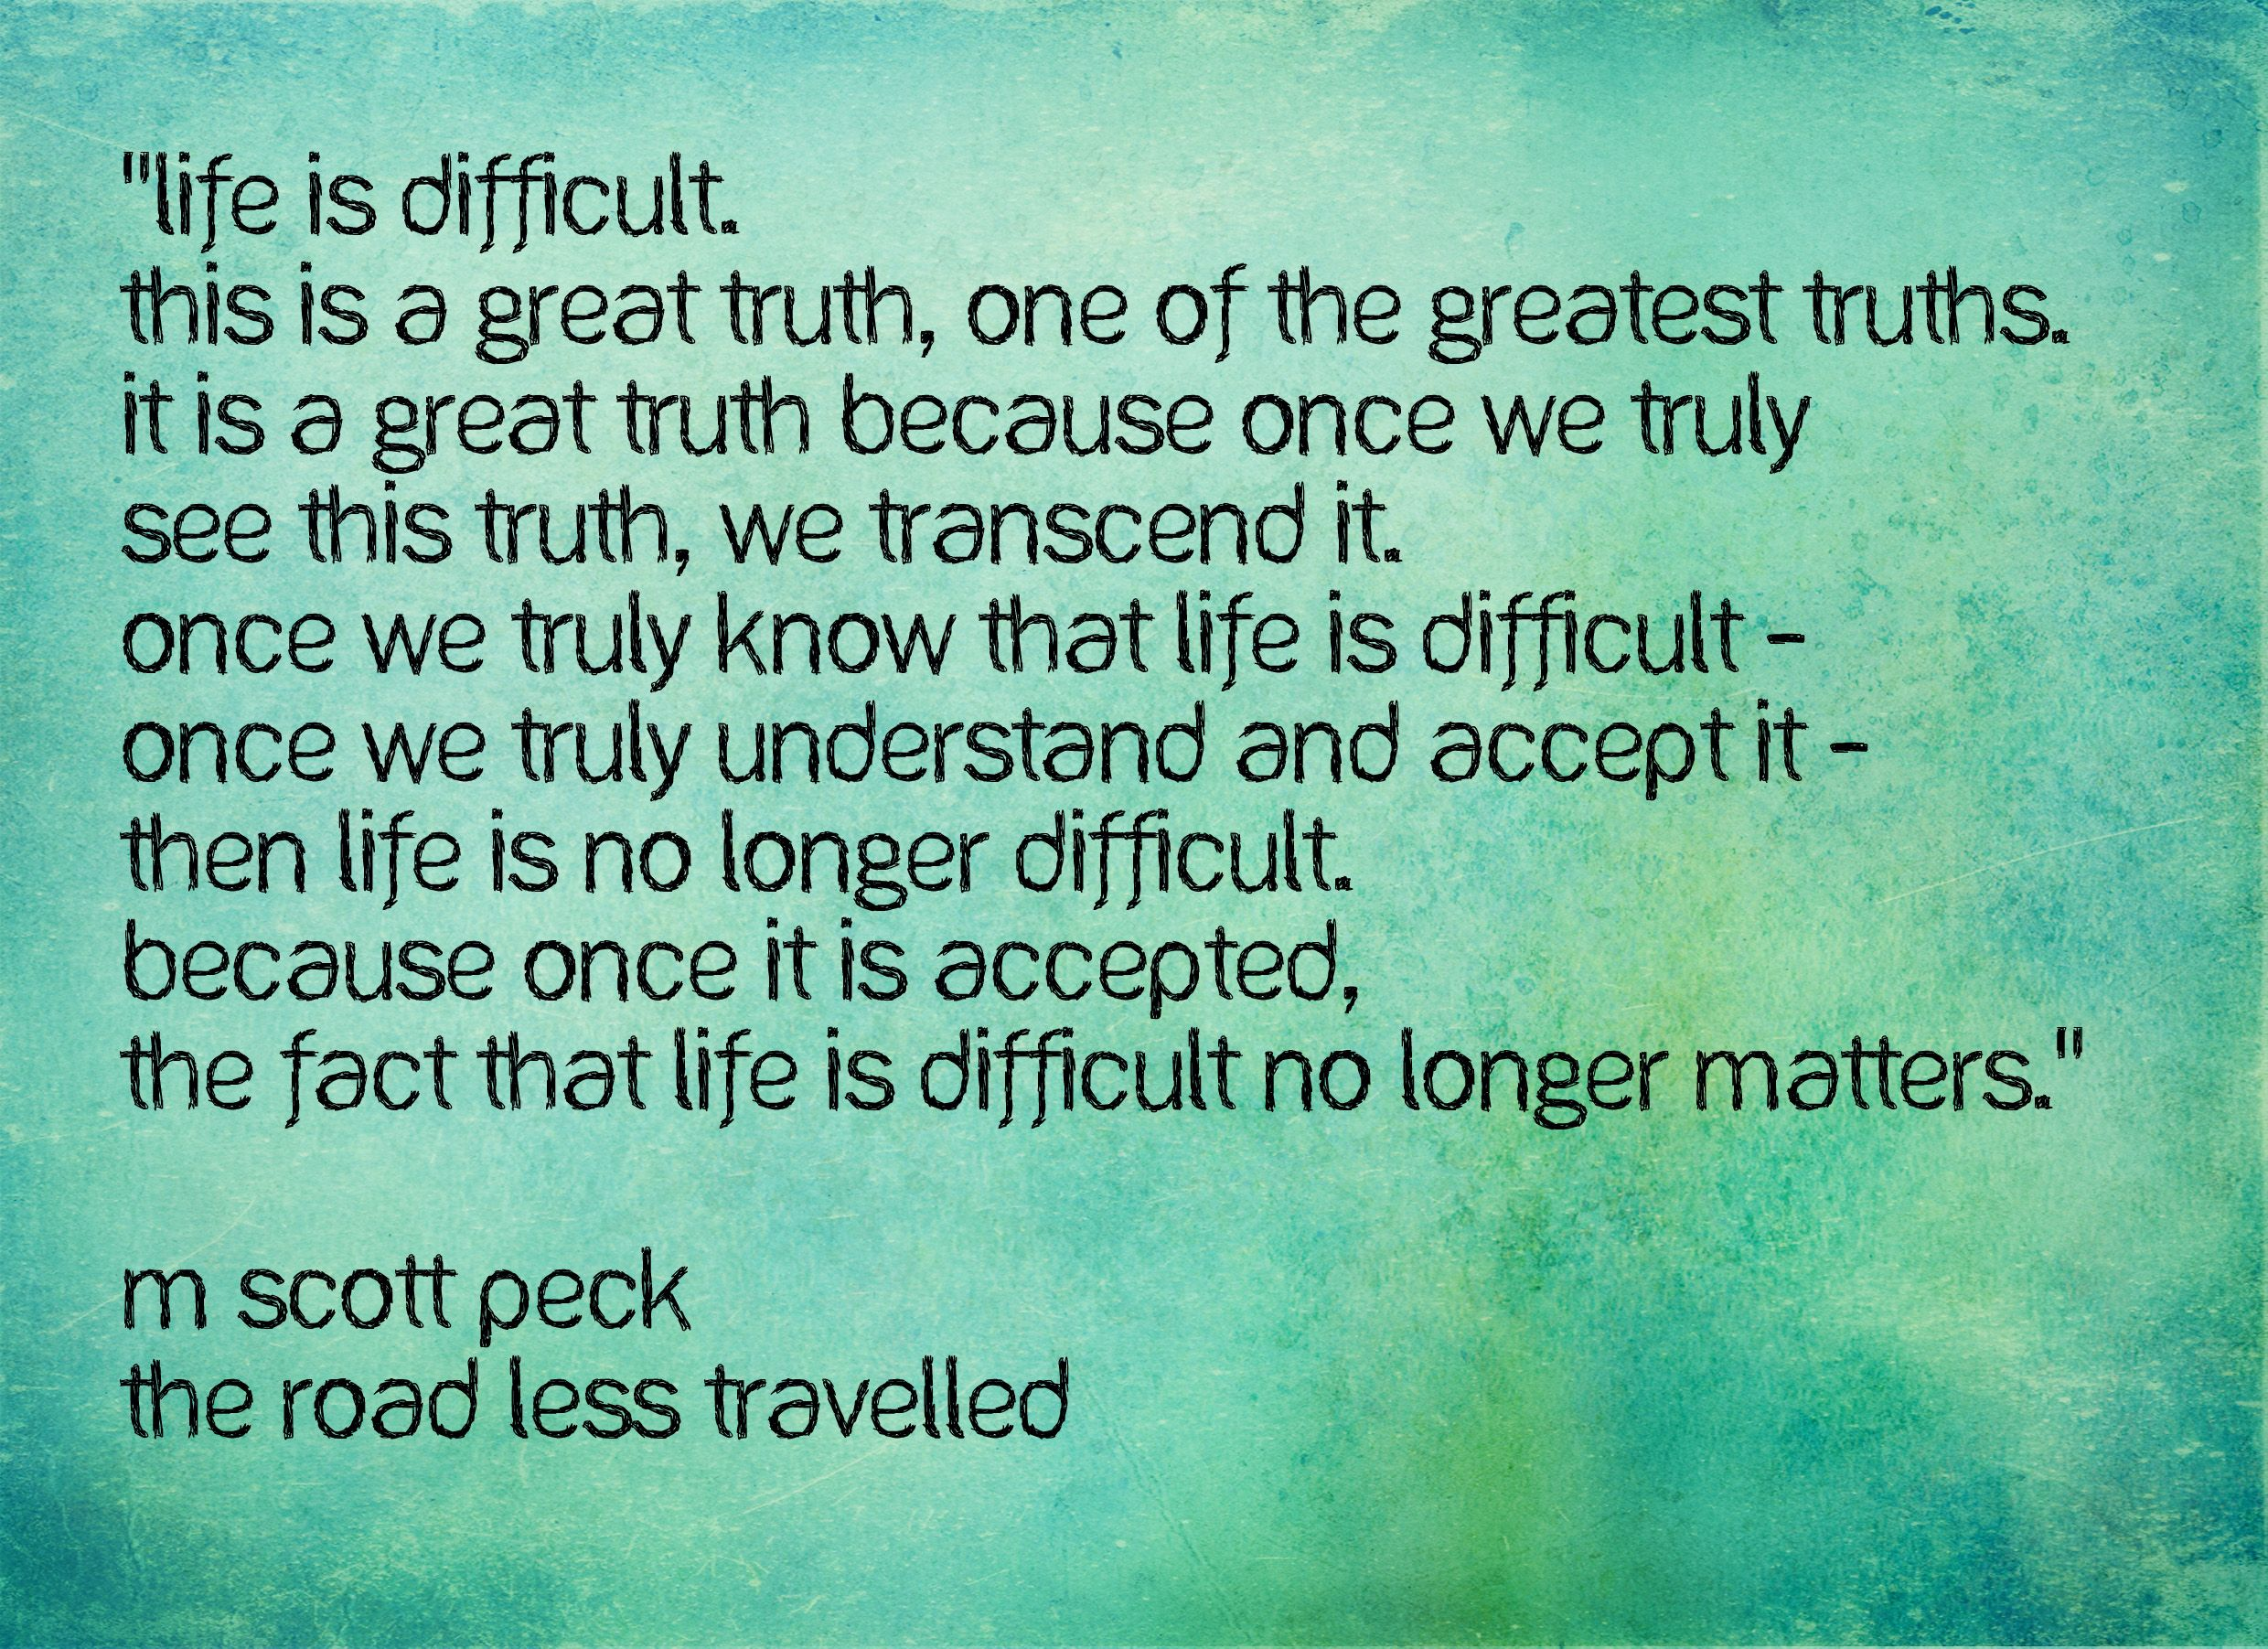 Life is difficult quote, M. Scott Peck The Road Less